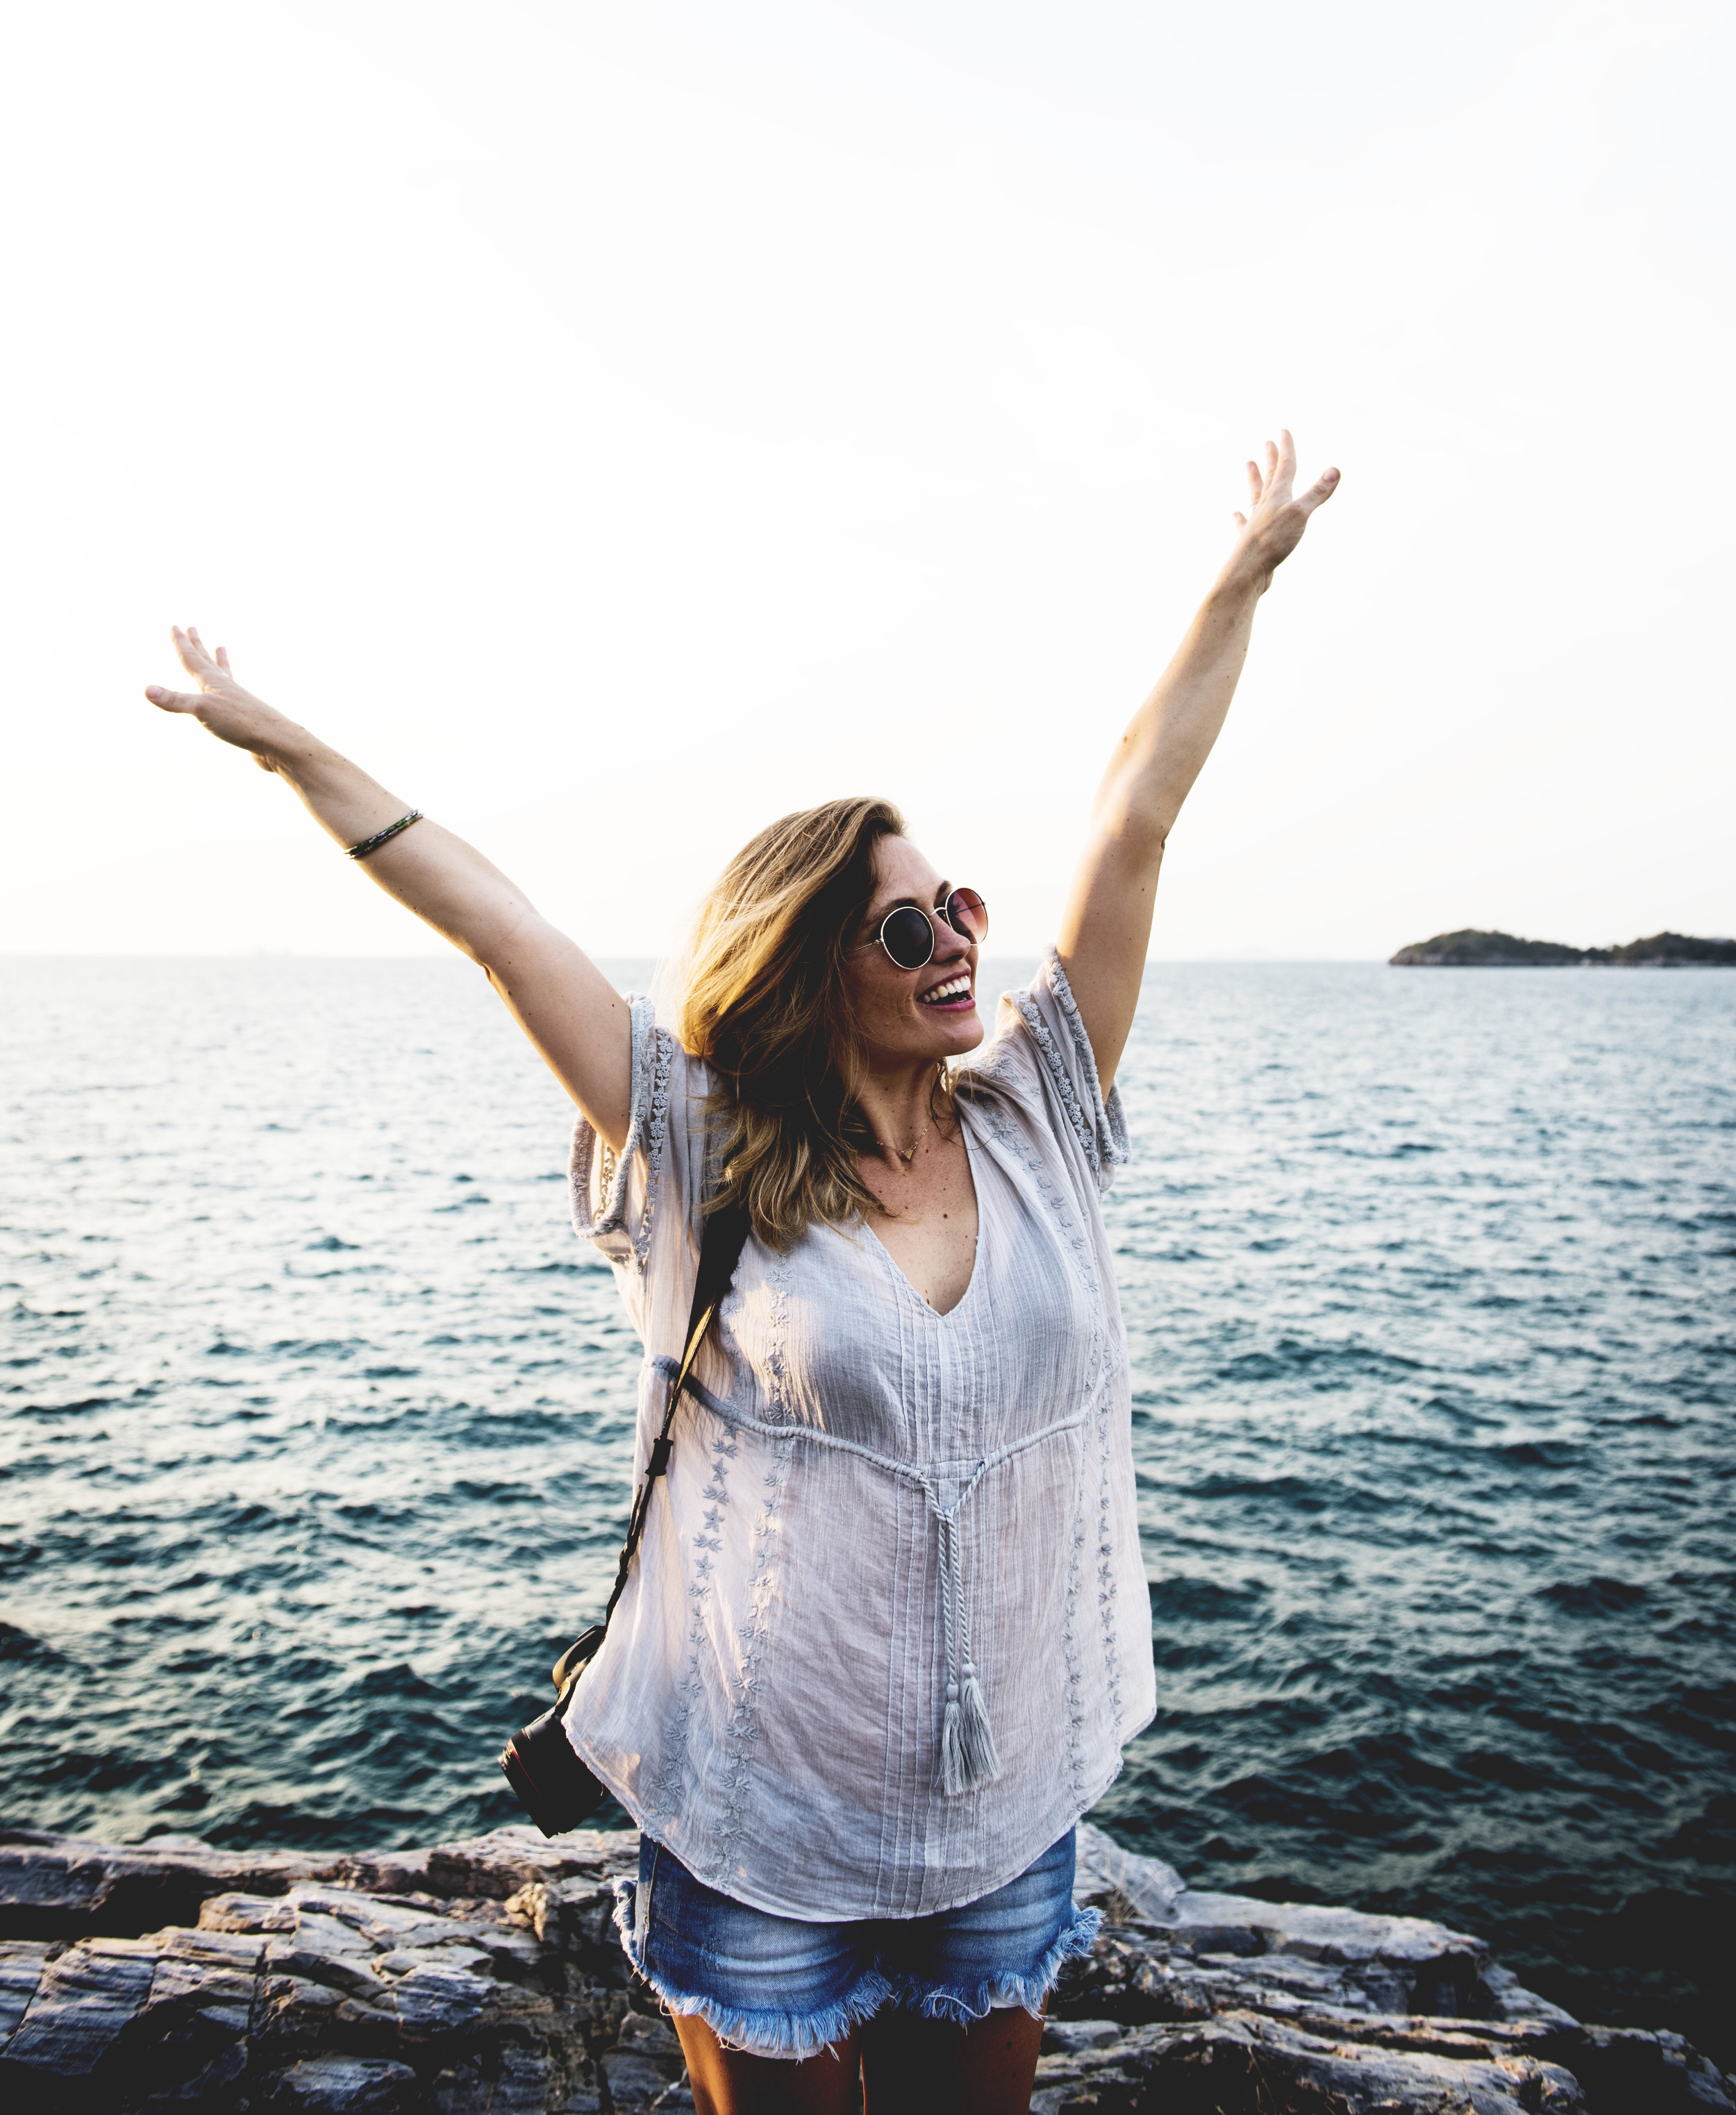 What you are about to get is your head start to achieving that lifestyle you have always wanted. - You're about to get access to workbooks, printables, PDFs, cheatsheets + so much more . . .